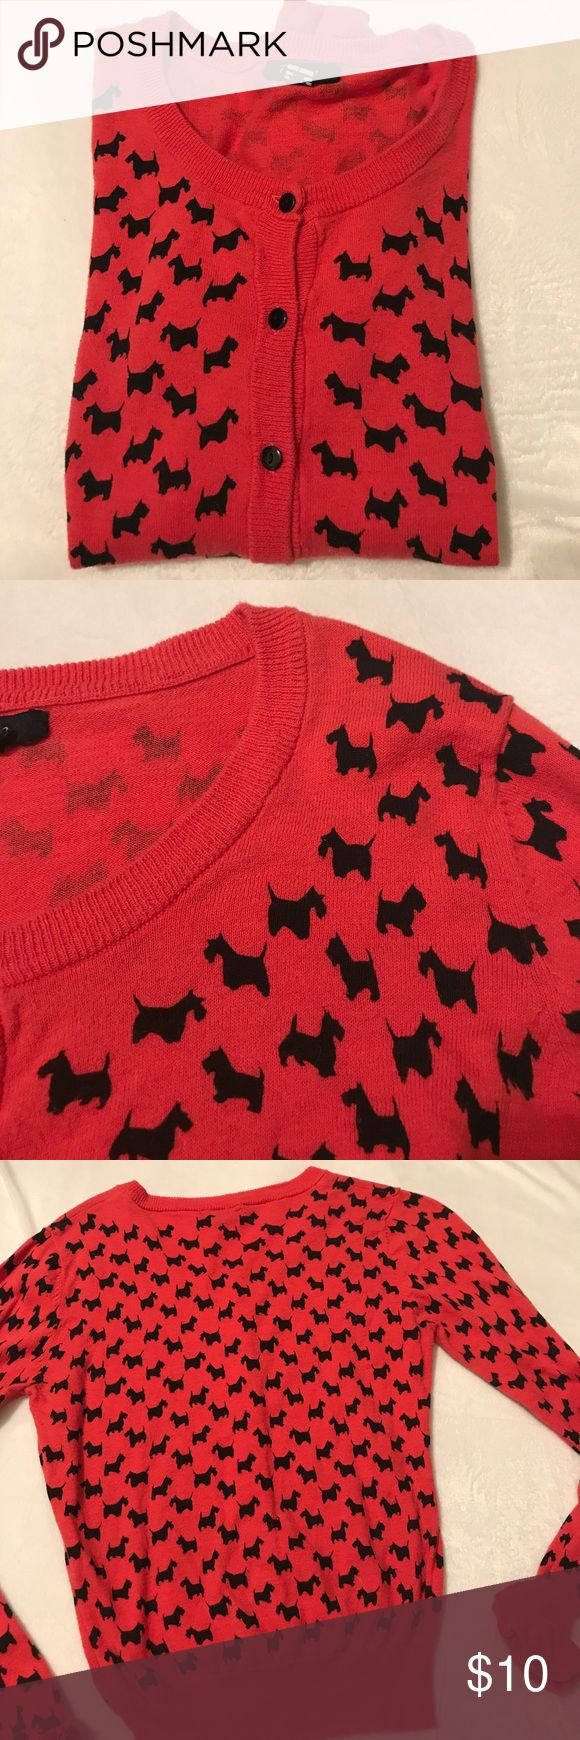 Scotty dog cardi Cute vintage style red cardi with Scotty dogs. Junior size L (I would say a ladies M) cute with a black shirt underneath and a black skirt or pants. Very sassy and preppy!! Great condition and smoke free home Timing Sweaters Cardigans